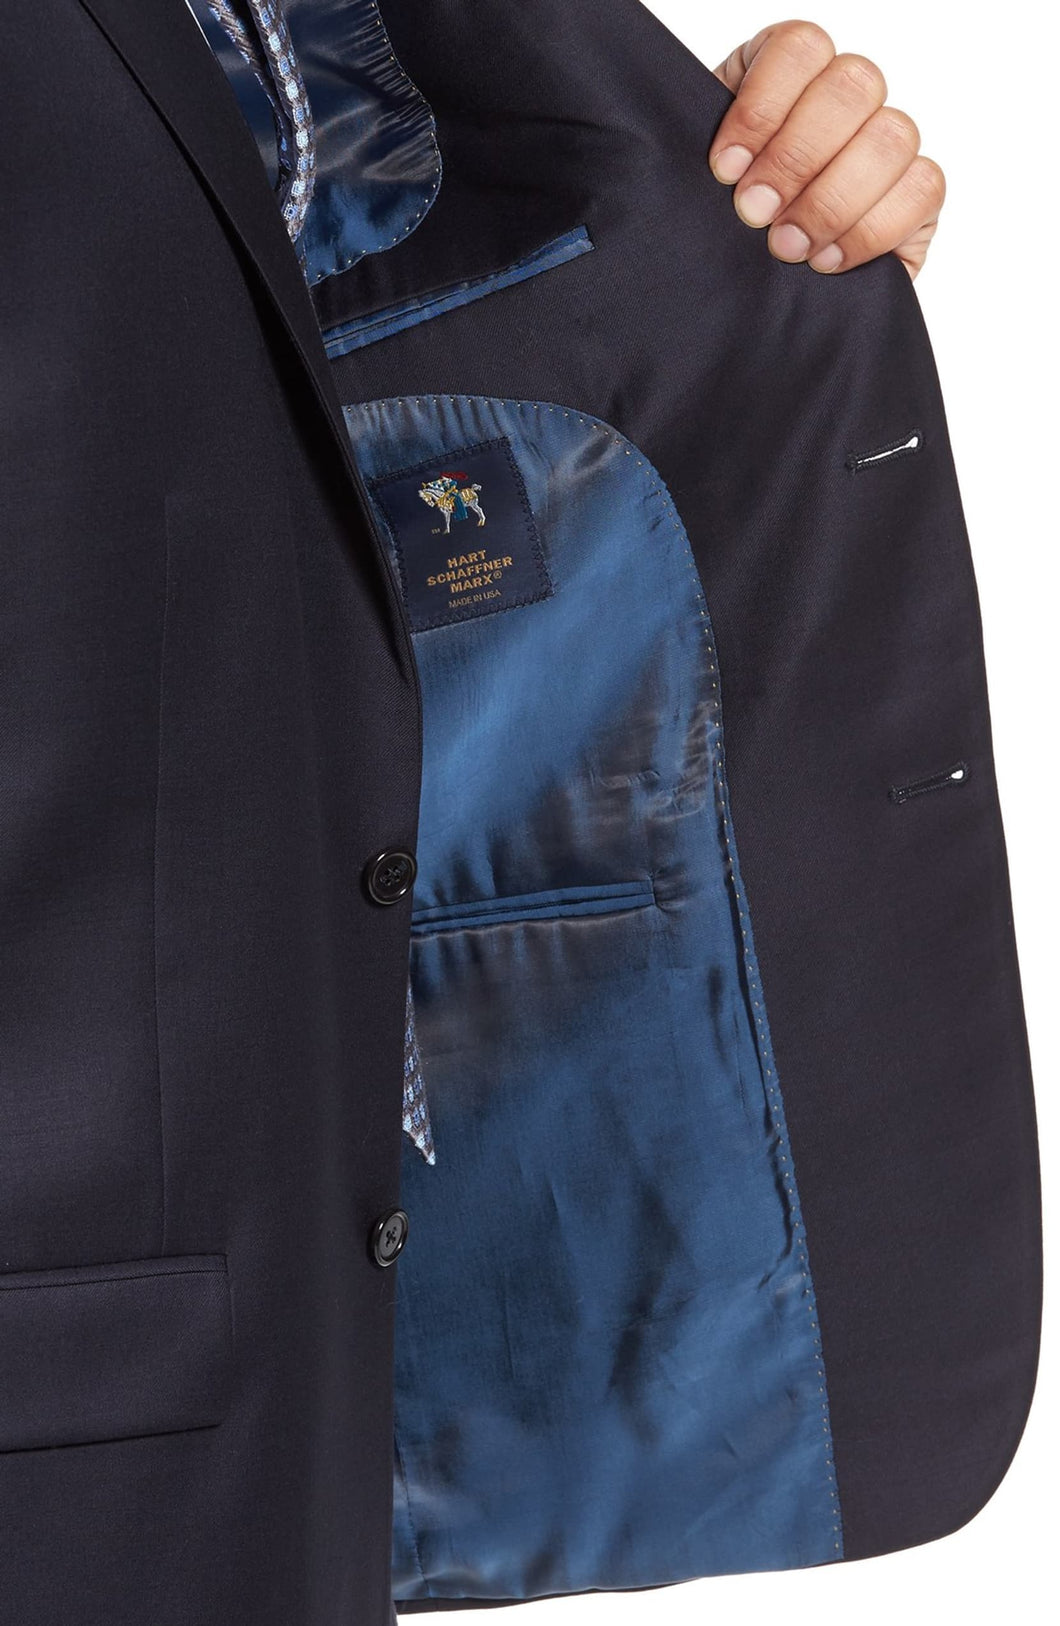 Hart Schaffner Marx Full Fit Navy Suit